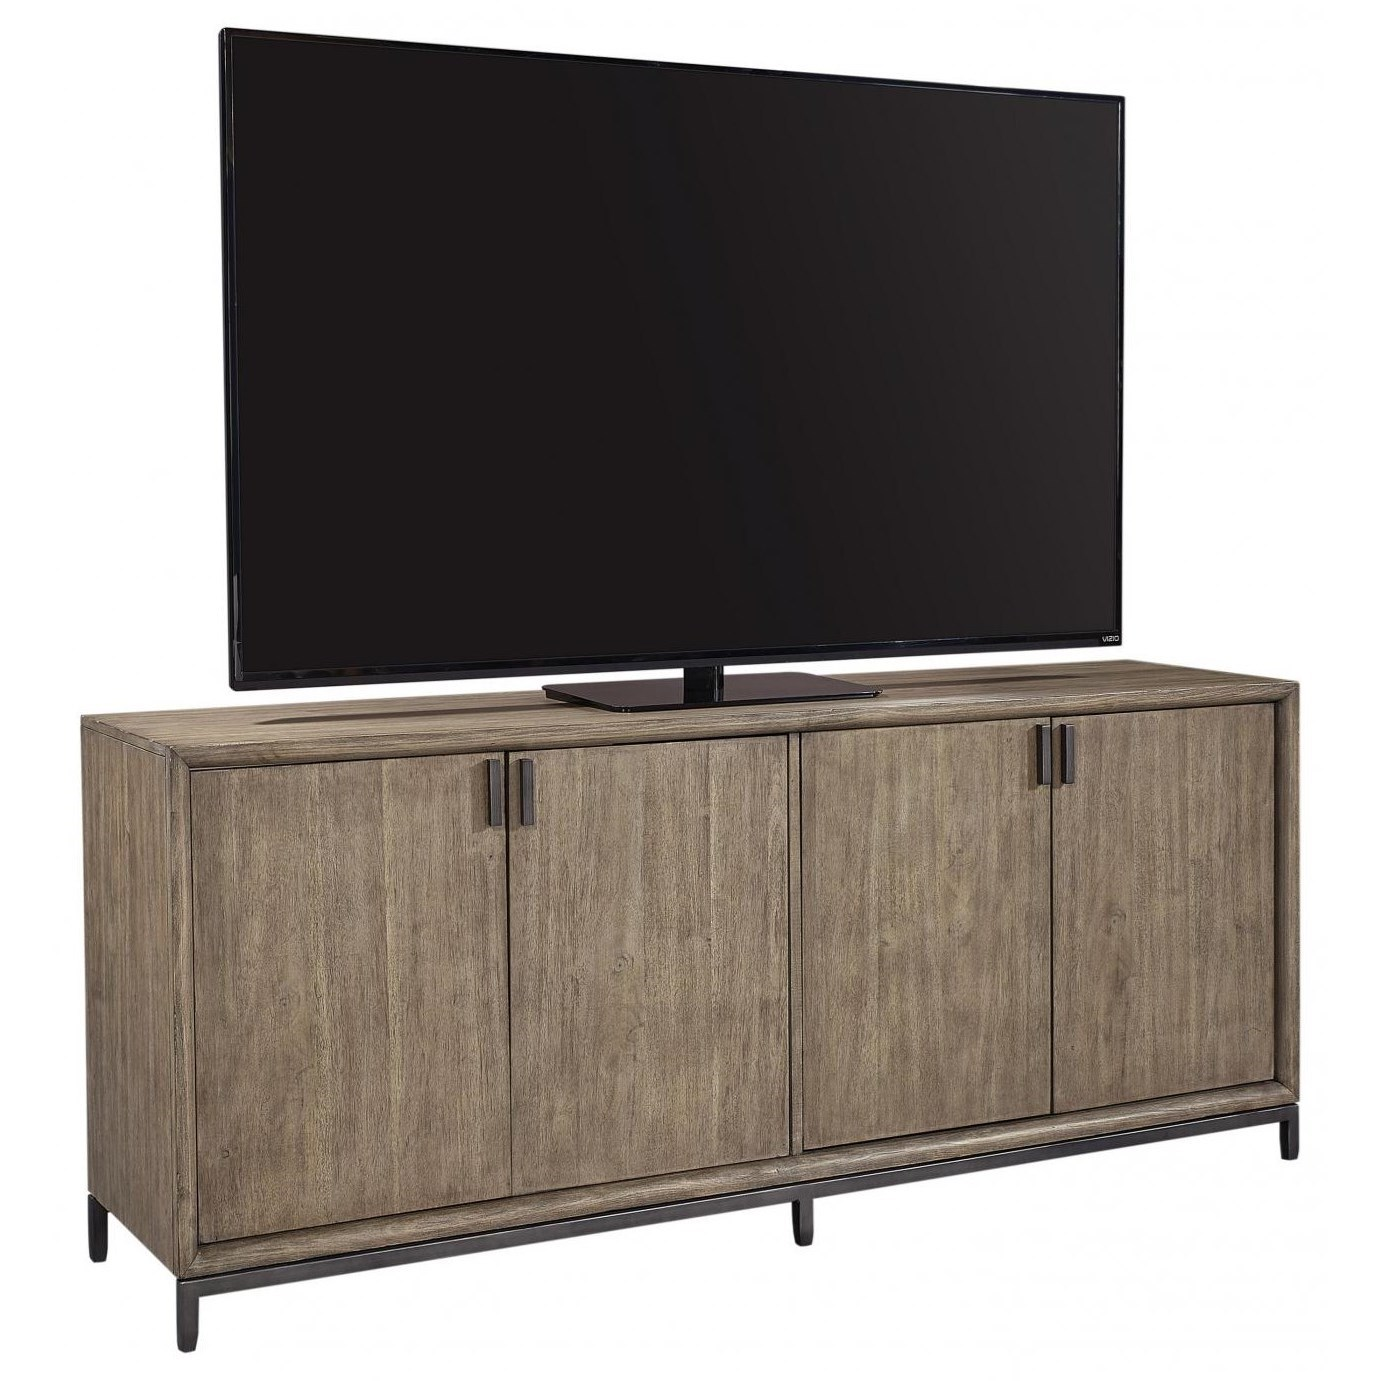 Trellis TV Cabinet by Aspenhome at Stoney Creek Furniture